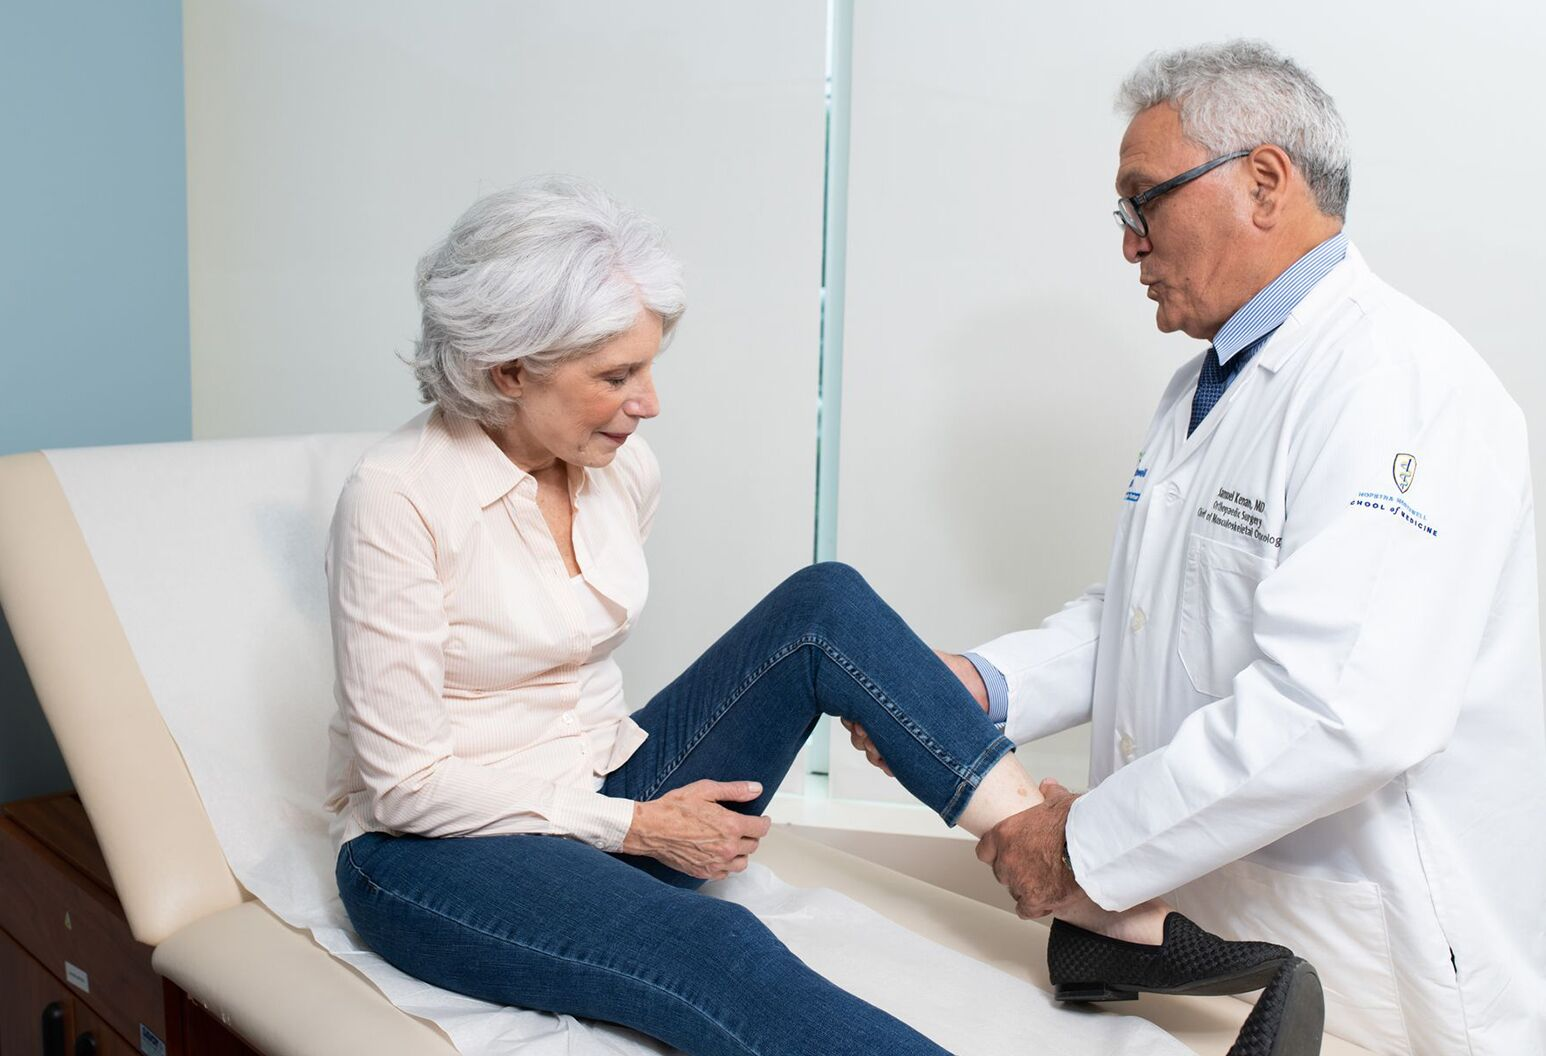 Elderly woman has her knee examined by a doctor